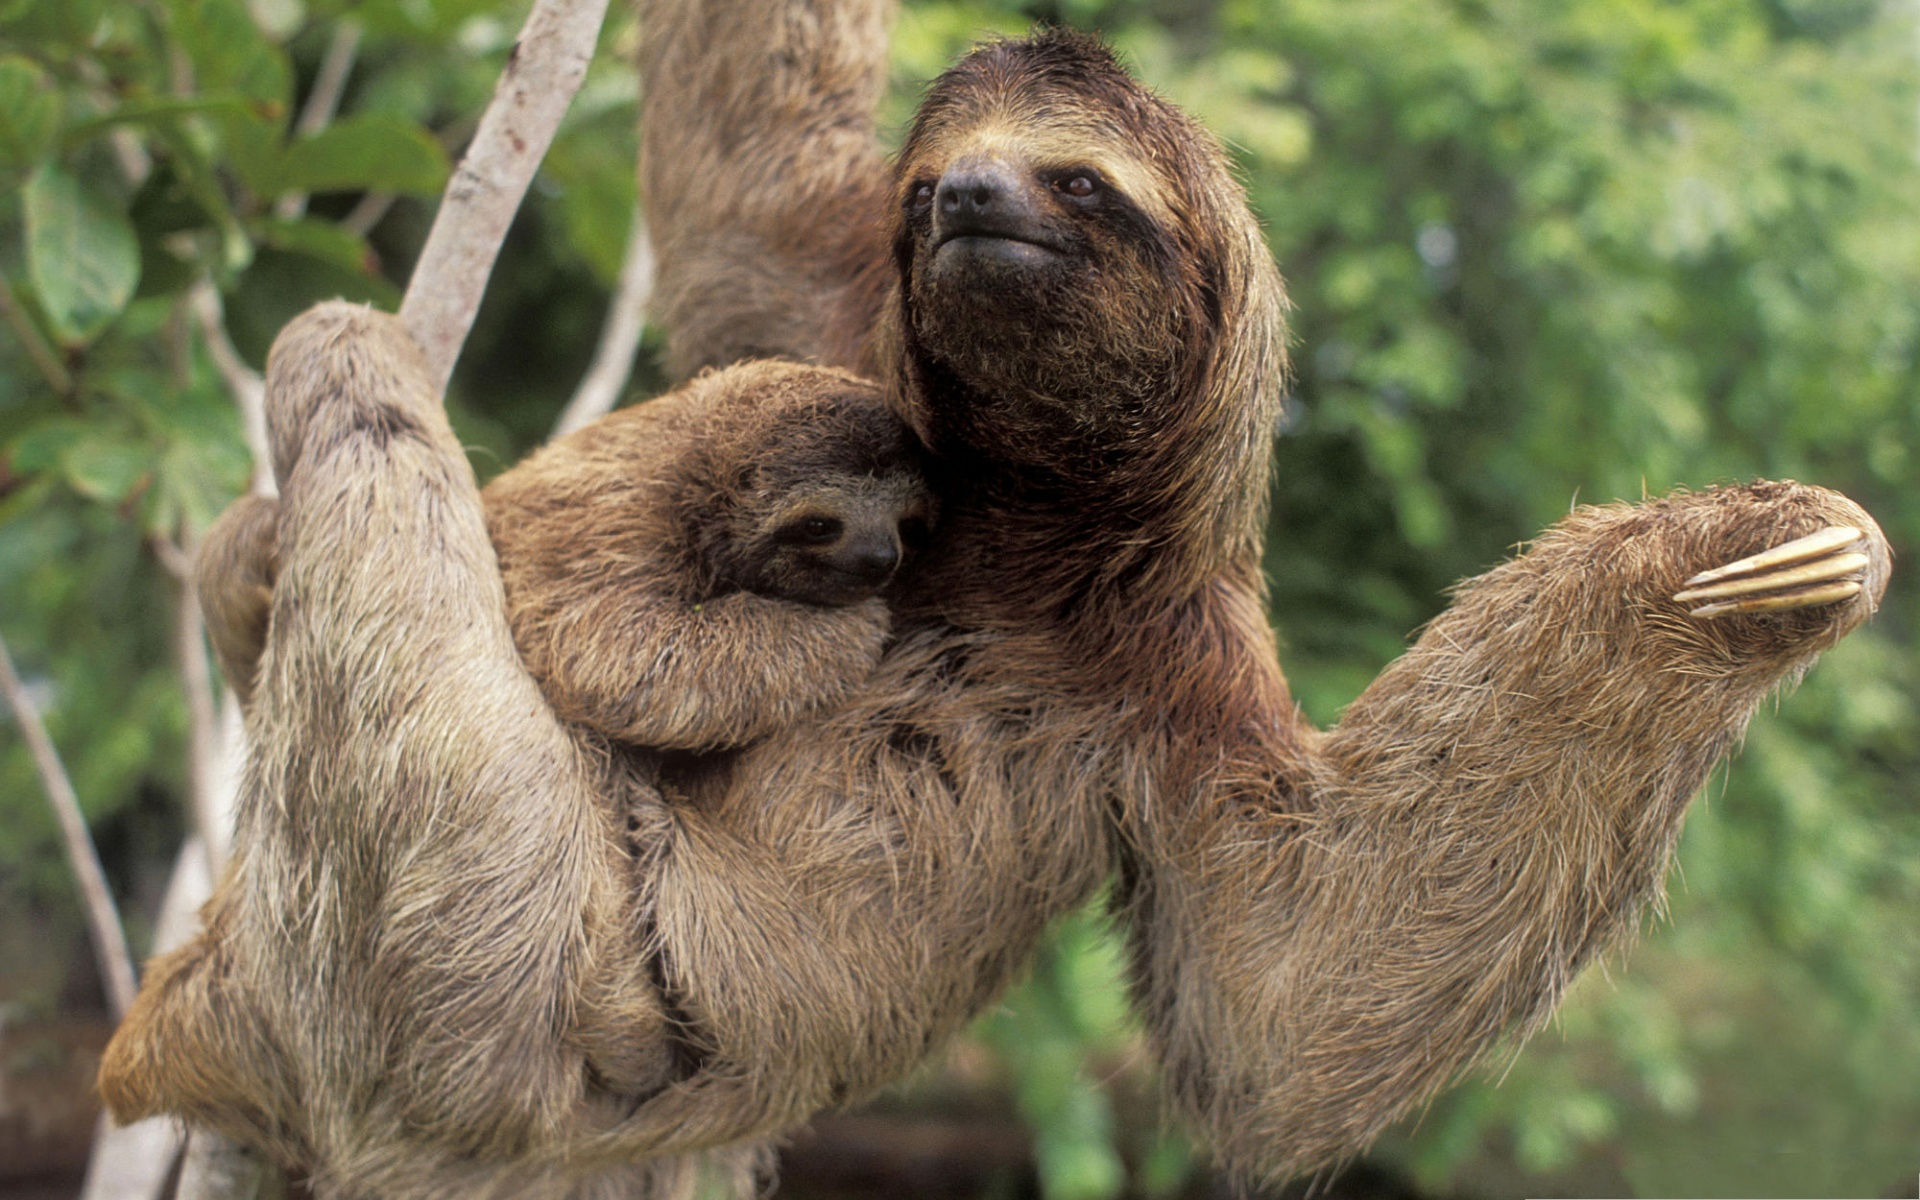 Three Toed Sloth Image, Cute Baby Kept in the Arms, Under Great Protection--1920X1200 free wallpaper download